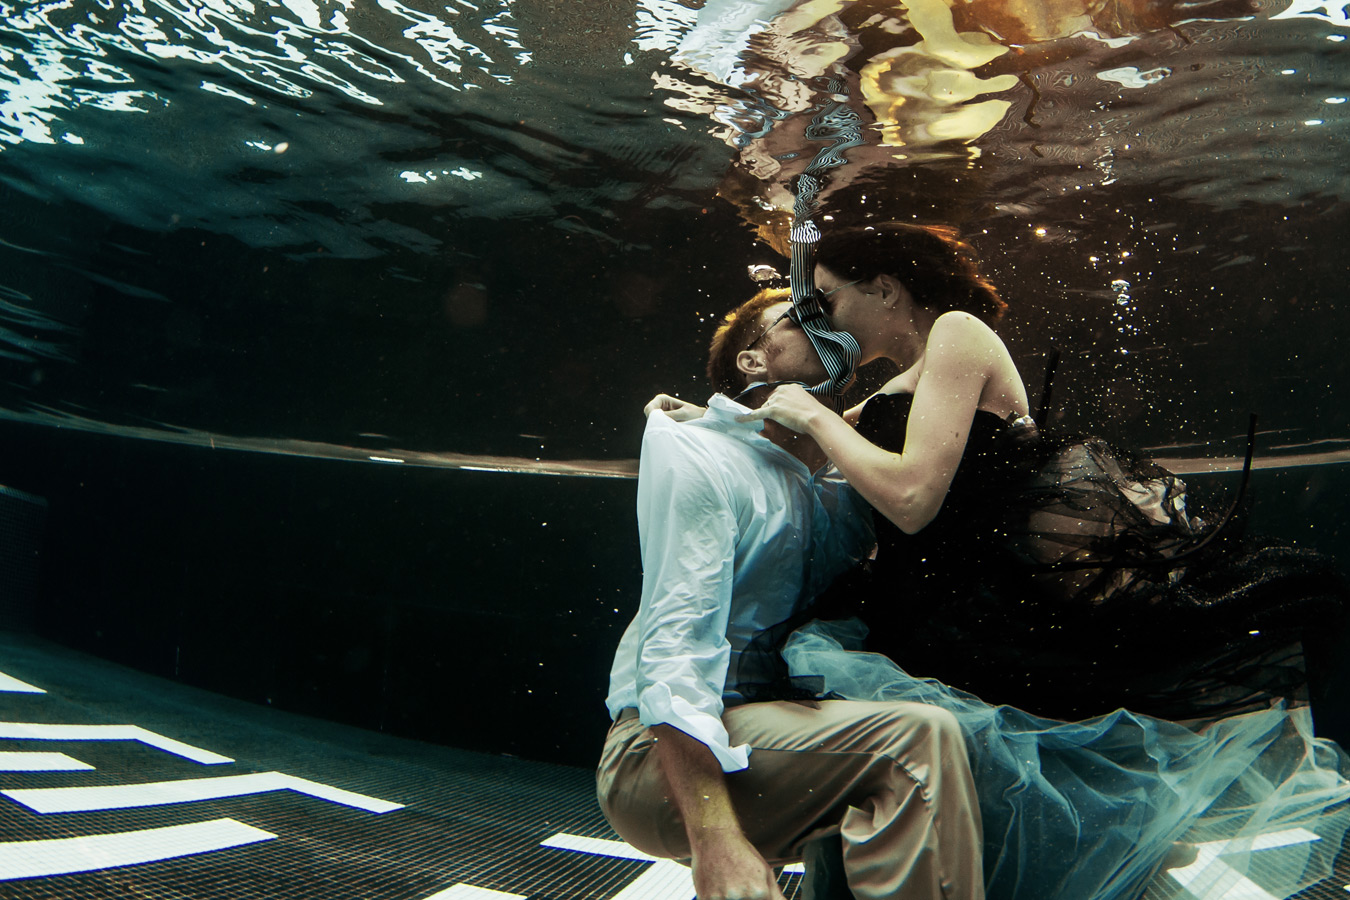 One of a set of images taken at Vanessa and Thor's destination Wedding in Porto Montenegro.Underwater kiss of the bride and groom at Montenegro Lido.Wedding Photography By Matt Porteous